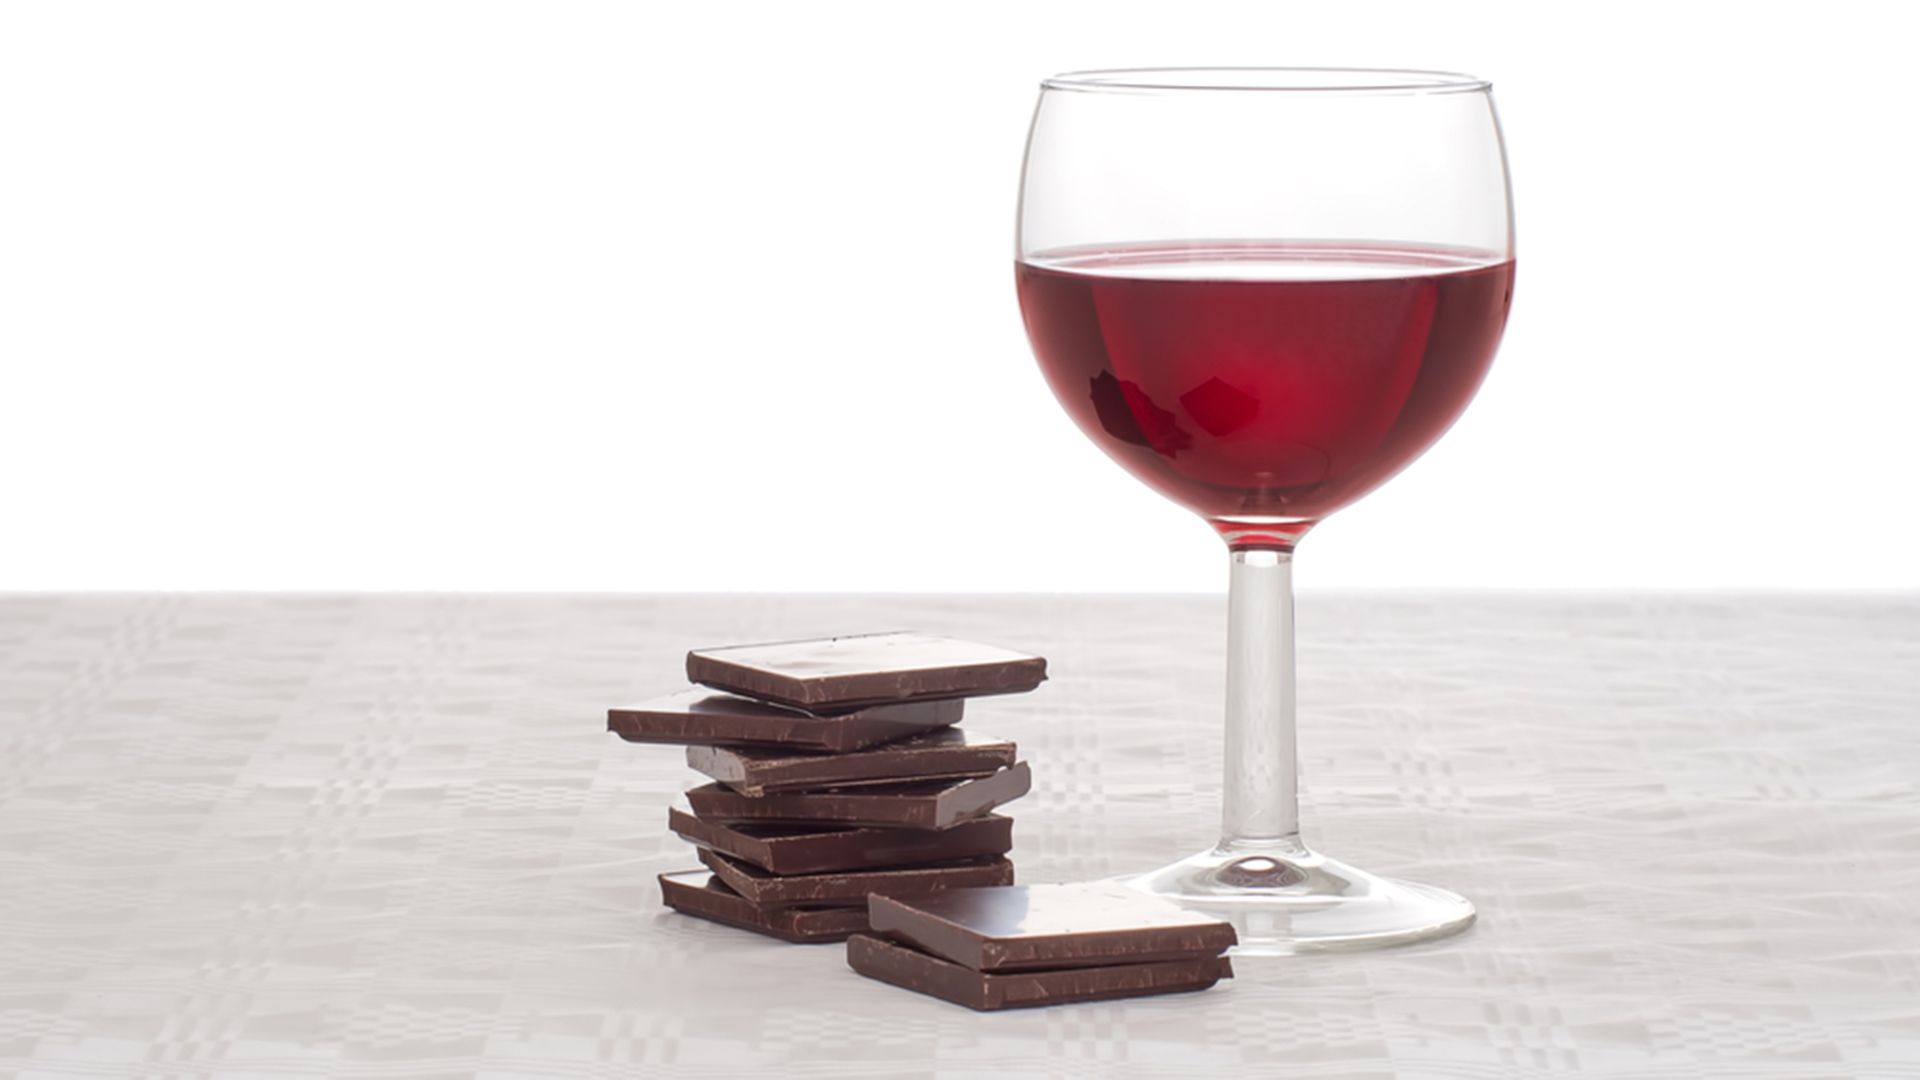 Chocolate Shop Chocolate Wine Calories